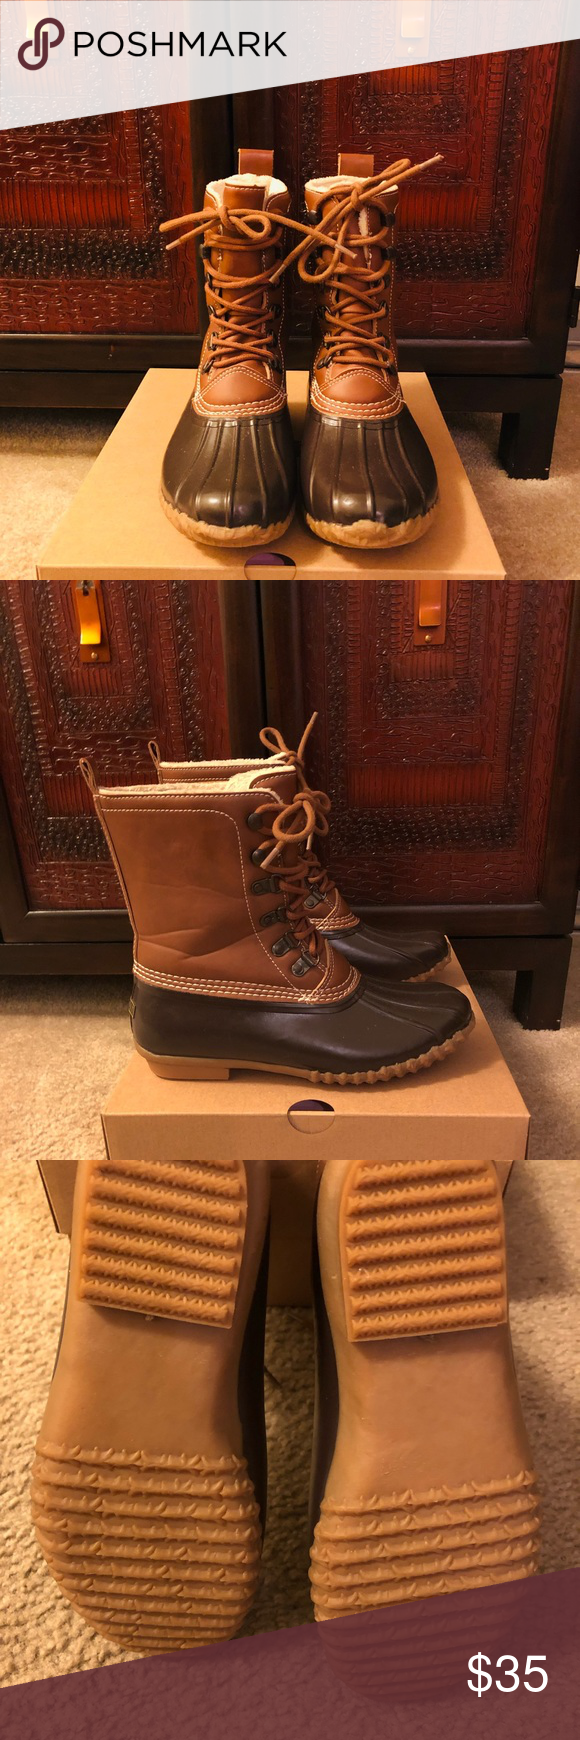 competitive price 1eb9e 1d29b Esprit Duck Boots Esprit Harbour Duck Boots In tan and ...